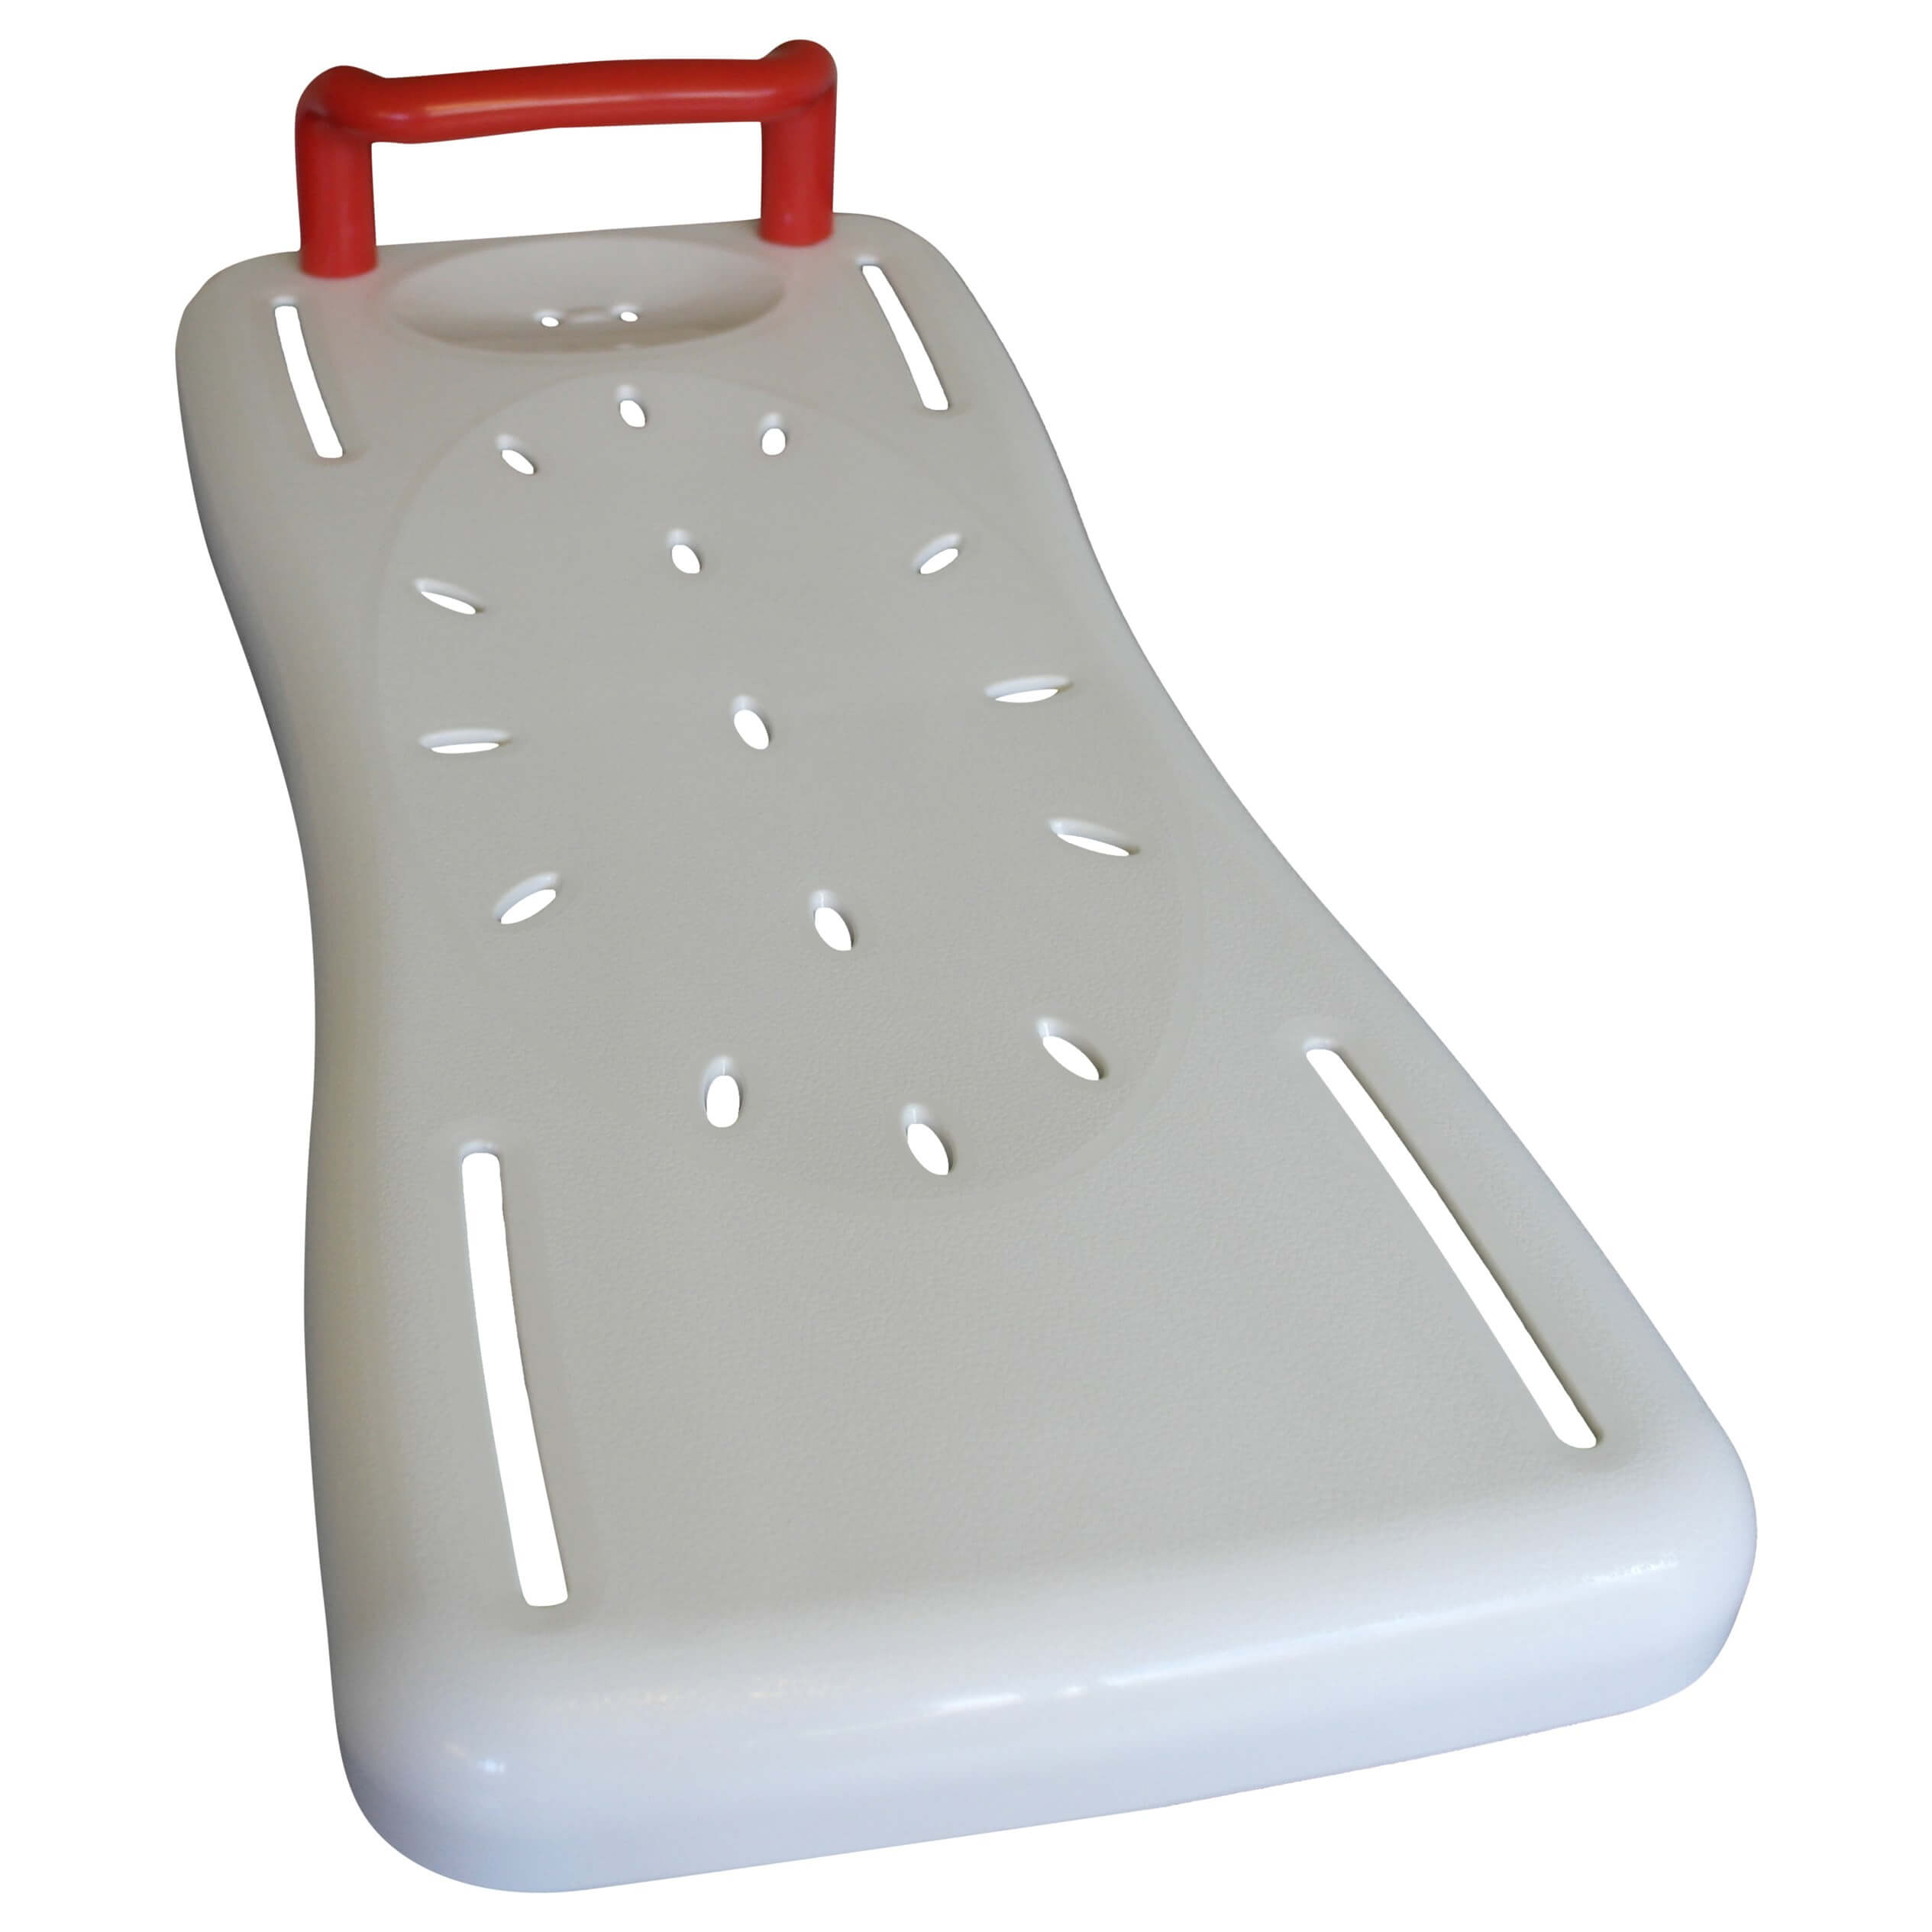 AssistData - Bathing seat board for bathtubs with adjustable width ...